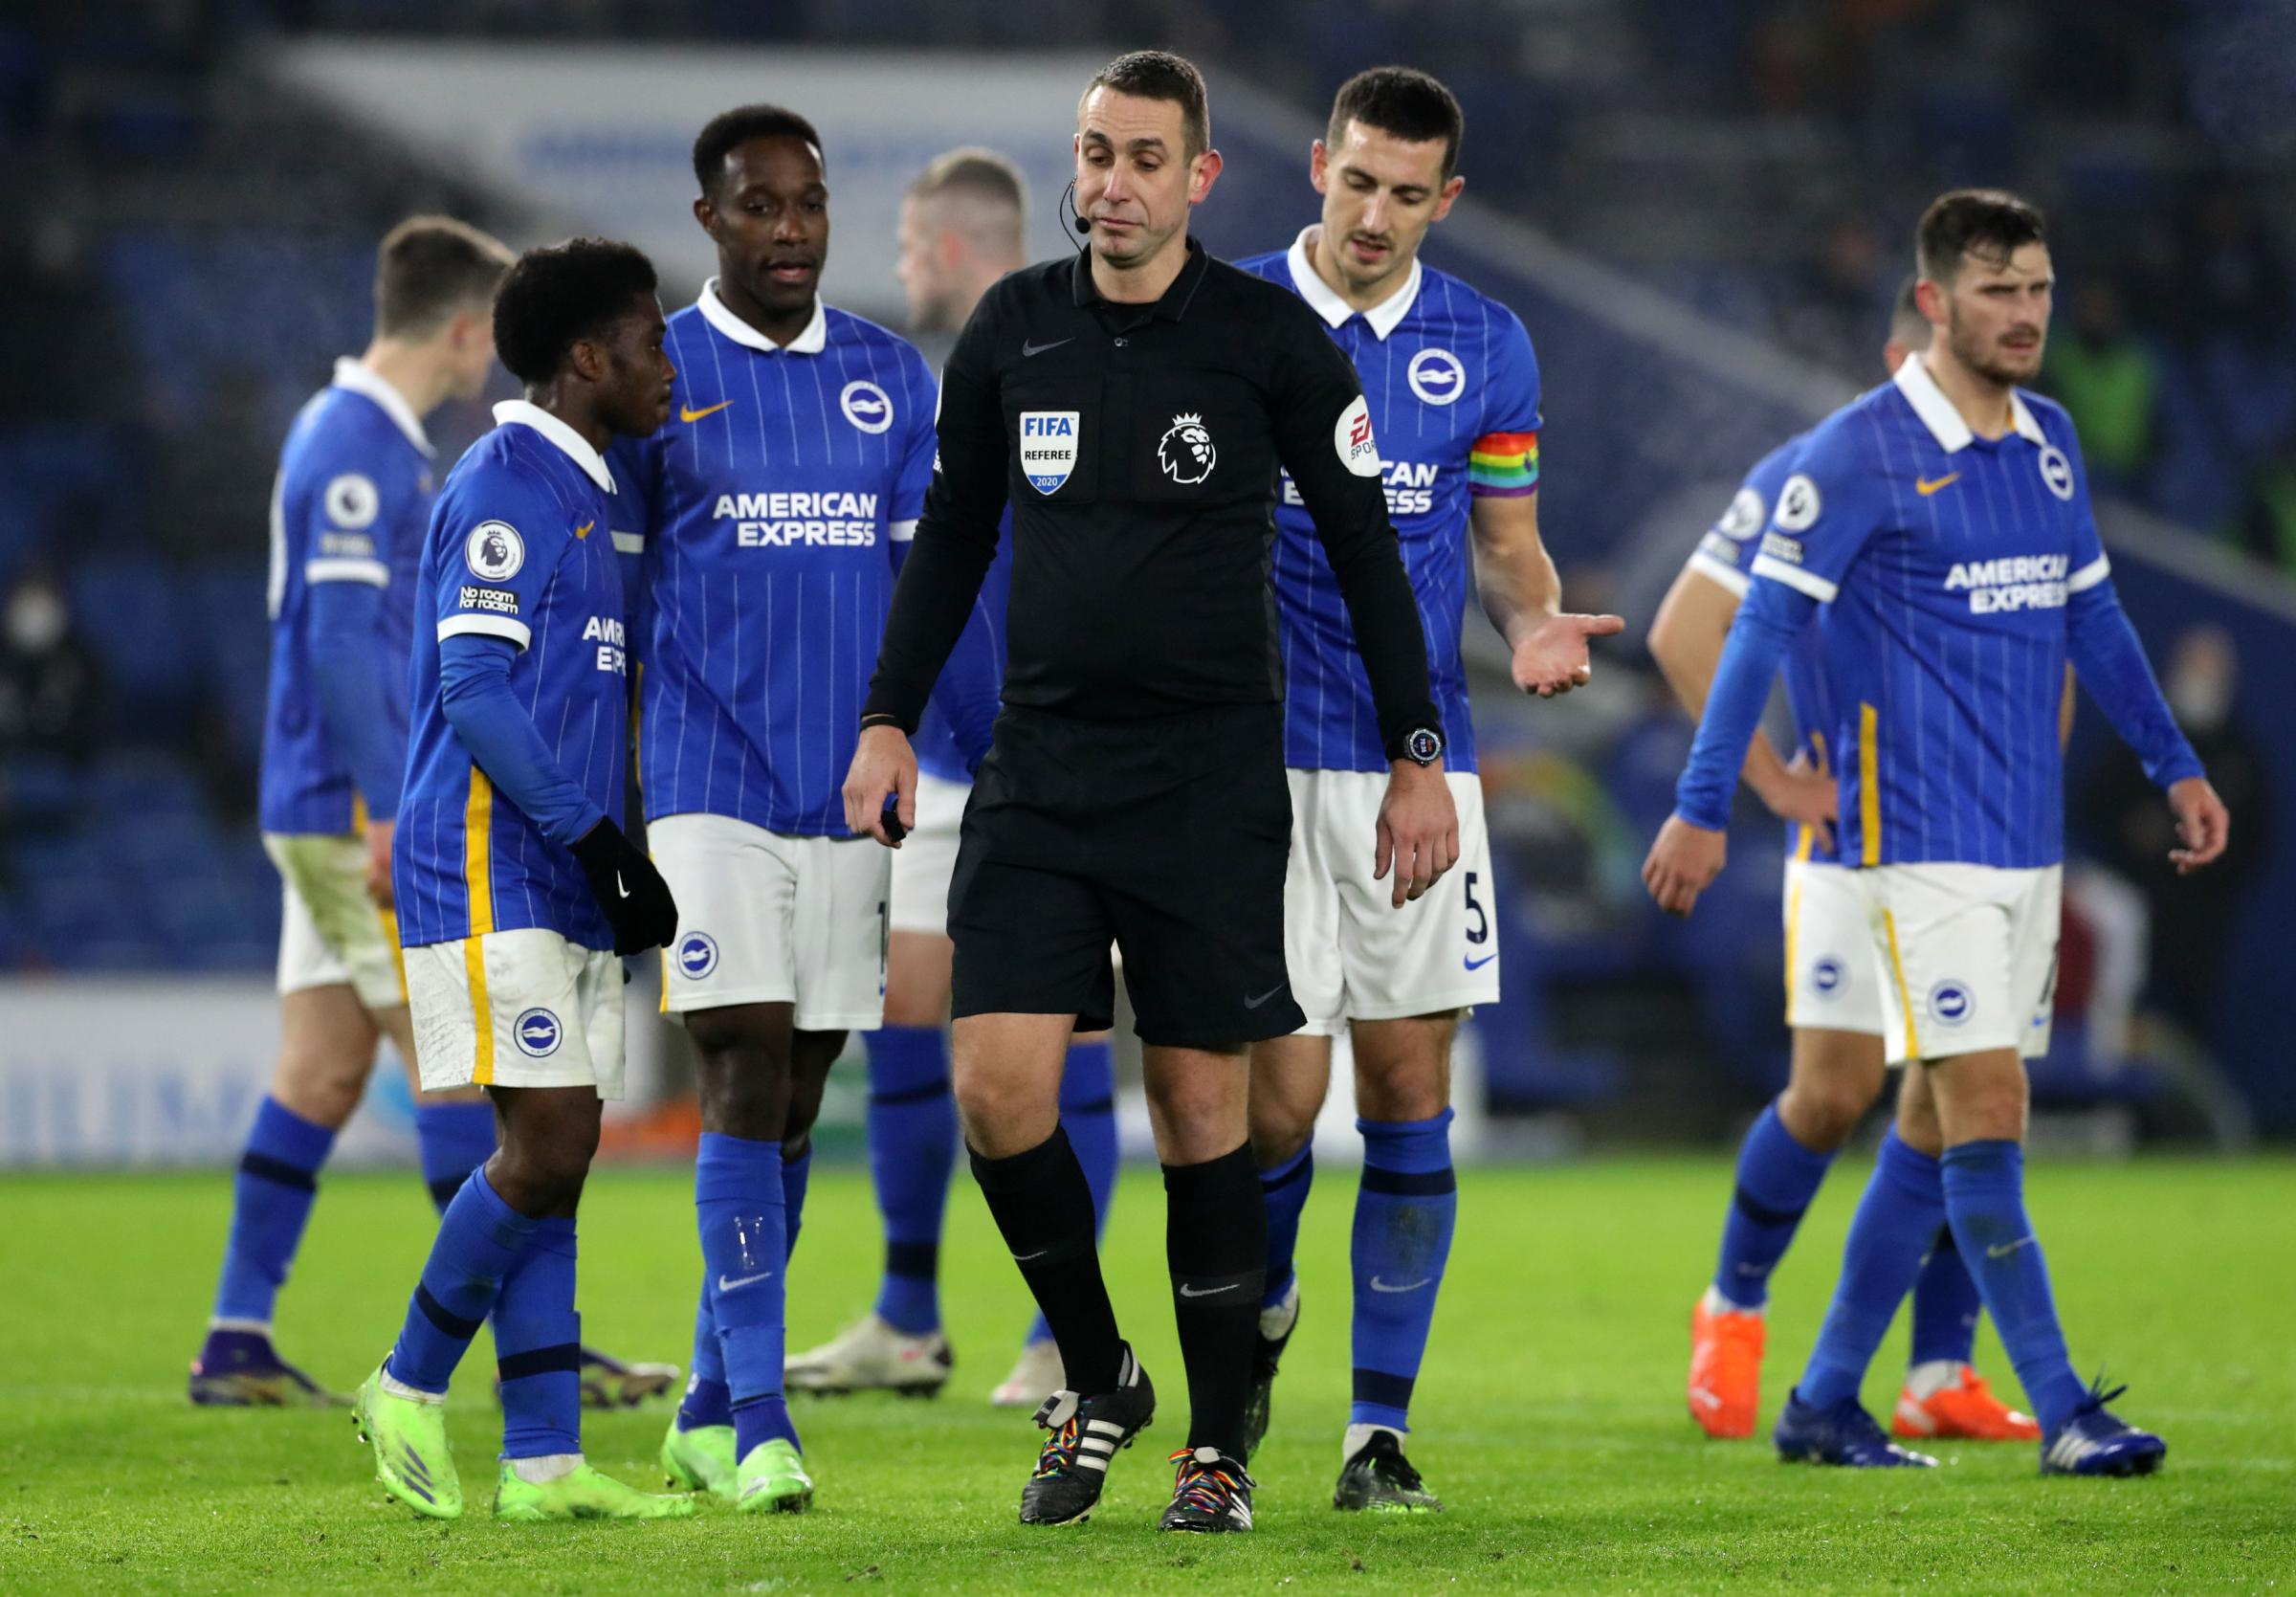 David Coote will take charge of Brighton's Premier League opener against Burnley